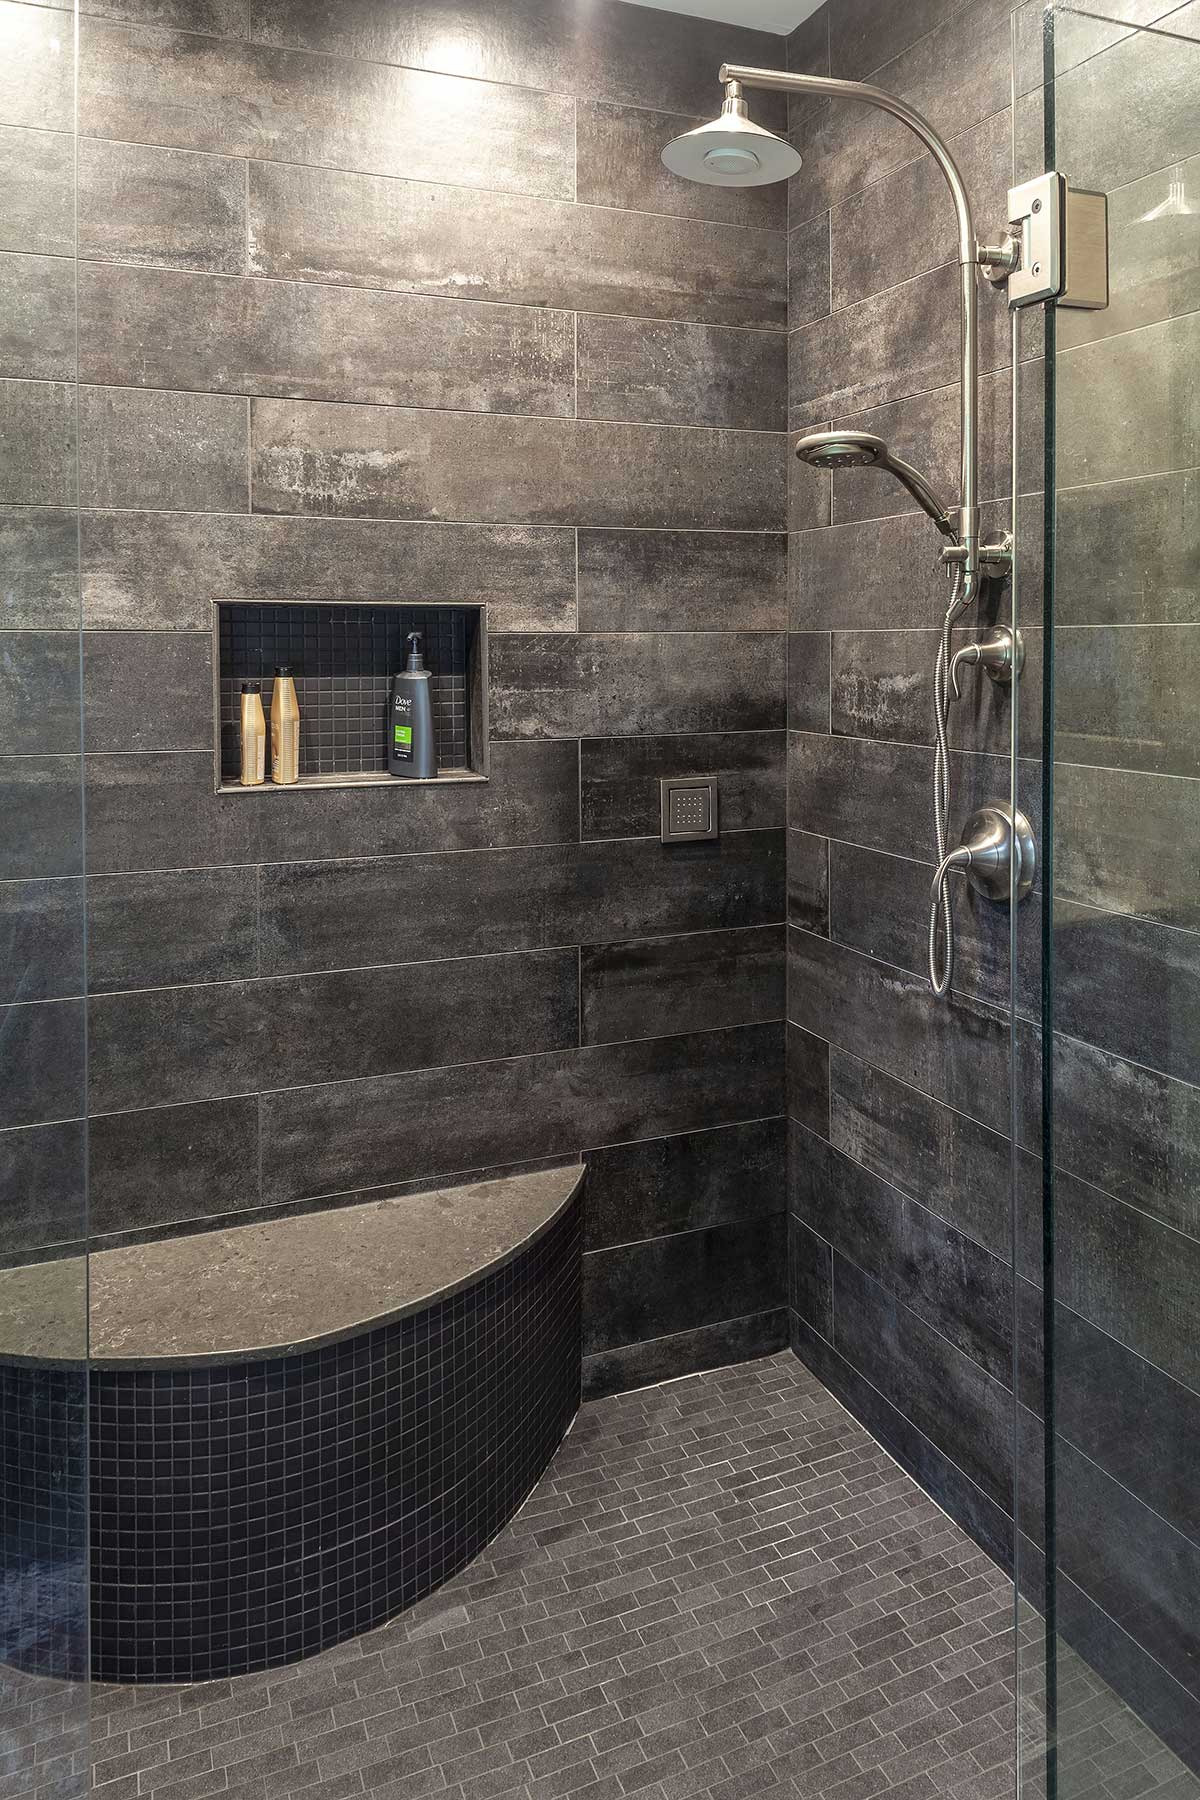 Shower seat, nook, and tile